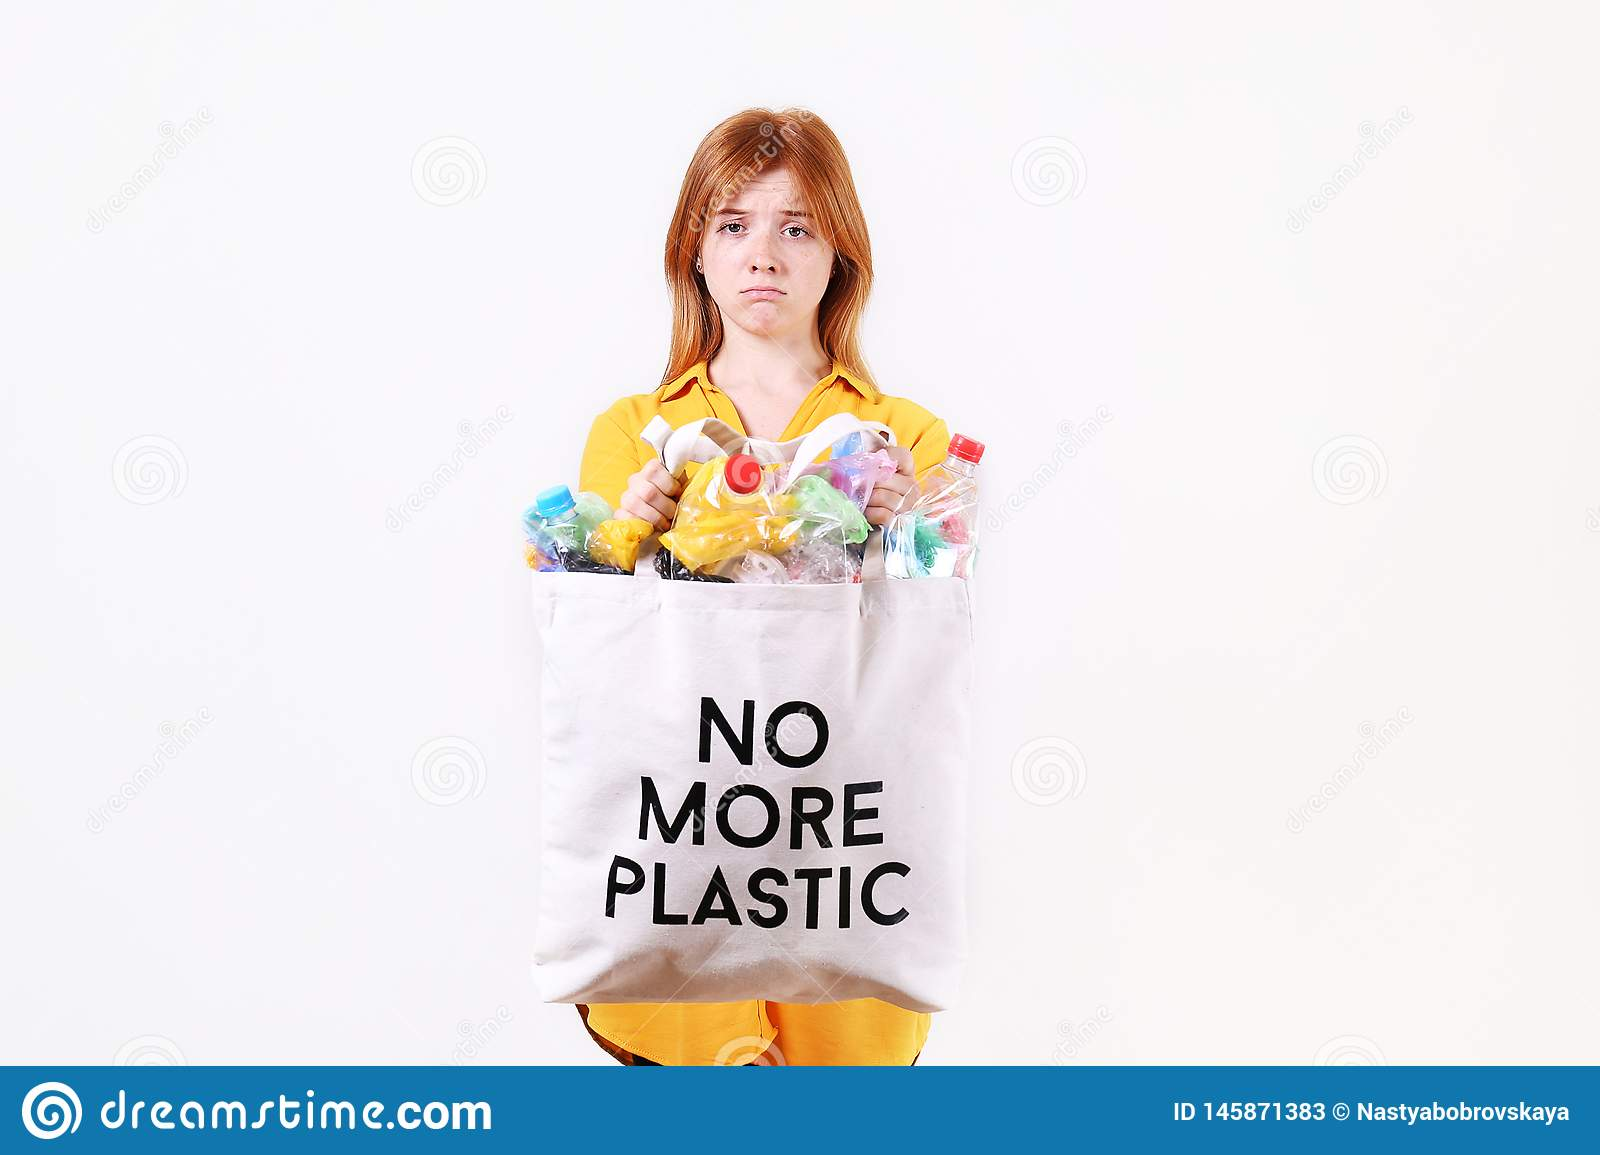 anti-plastic-campaign-poster-concept-emotional-redhead-woman-holding-eco-friendly-shopping-bag-no-more-text-full-harmful-145871383.jpg?profile=RESIZE_400x